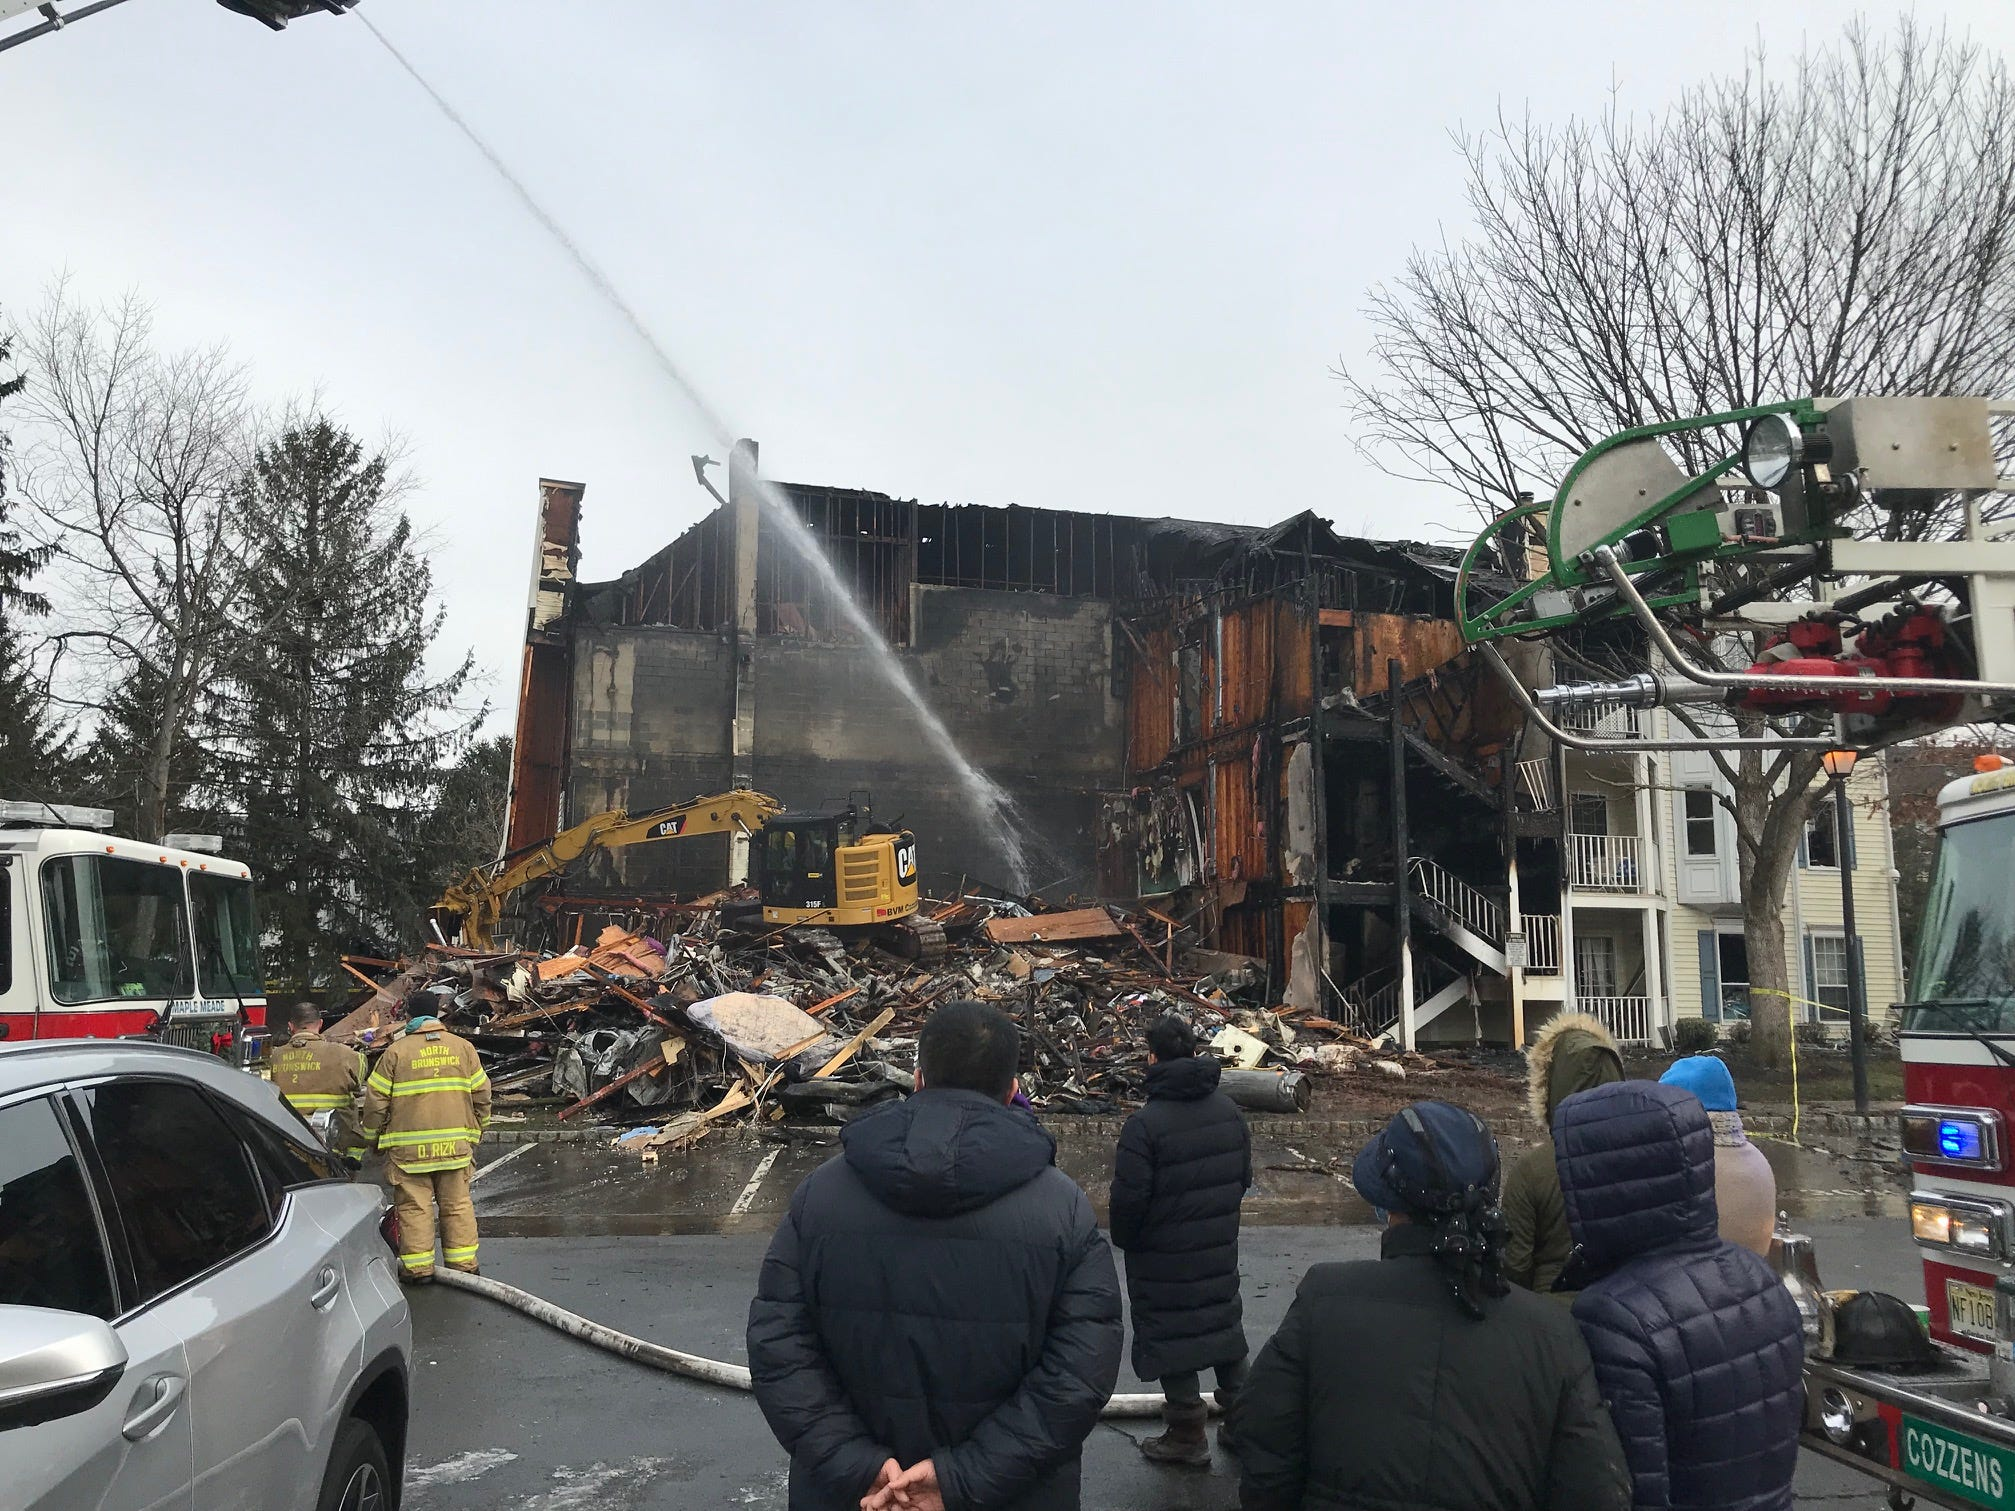 A Saturday night fire at Governor's Pointe Condominiums in North Brunswick gutted a 12-unit building leaving 28 people, including three children, displaced. The fire remains under investigation.